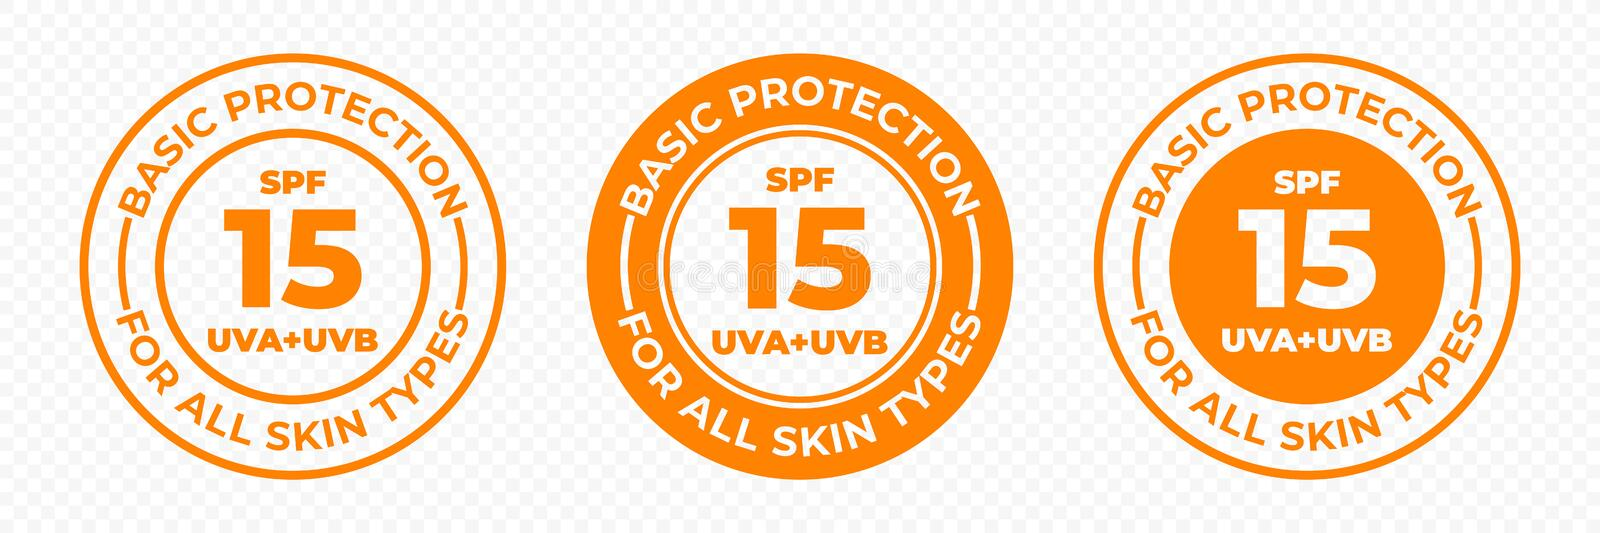 SPF 15 sun protection UVA and UVB vector icons. SPF 15 basic UV protection skin lotion and cream package label. Stamp stock illustration